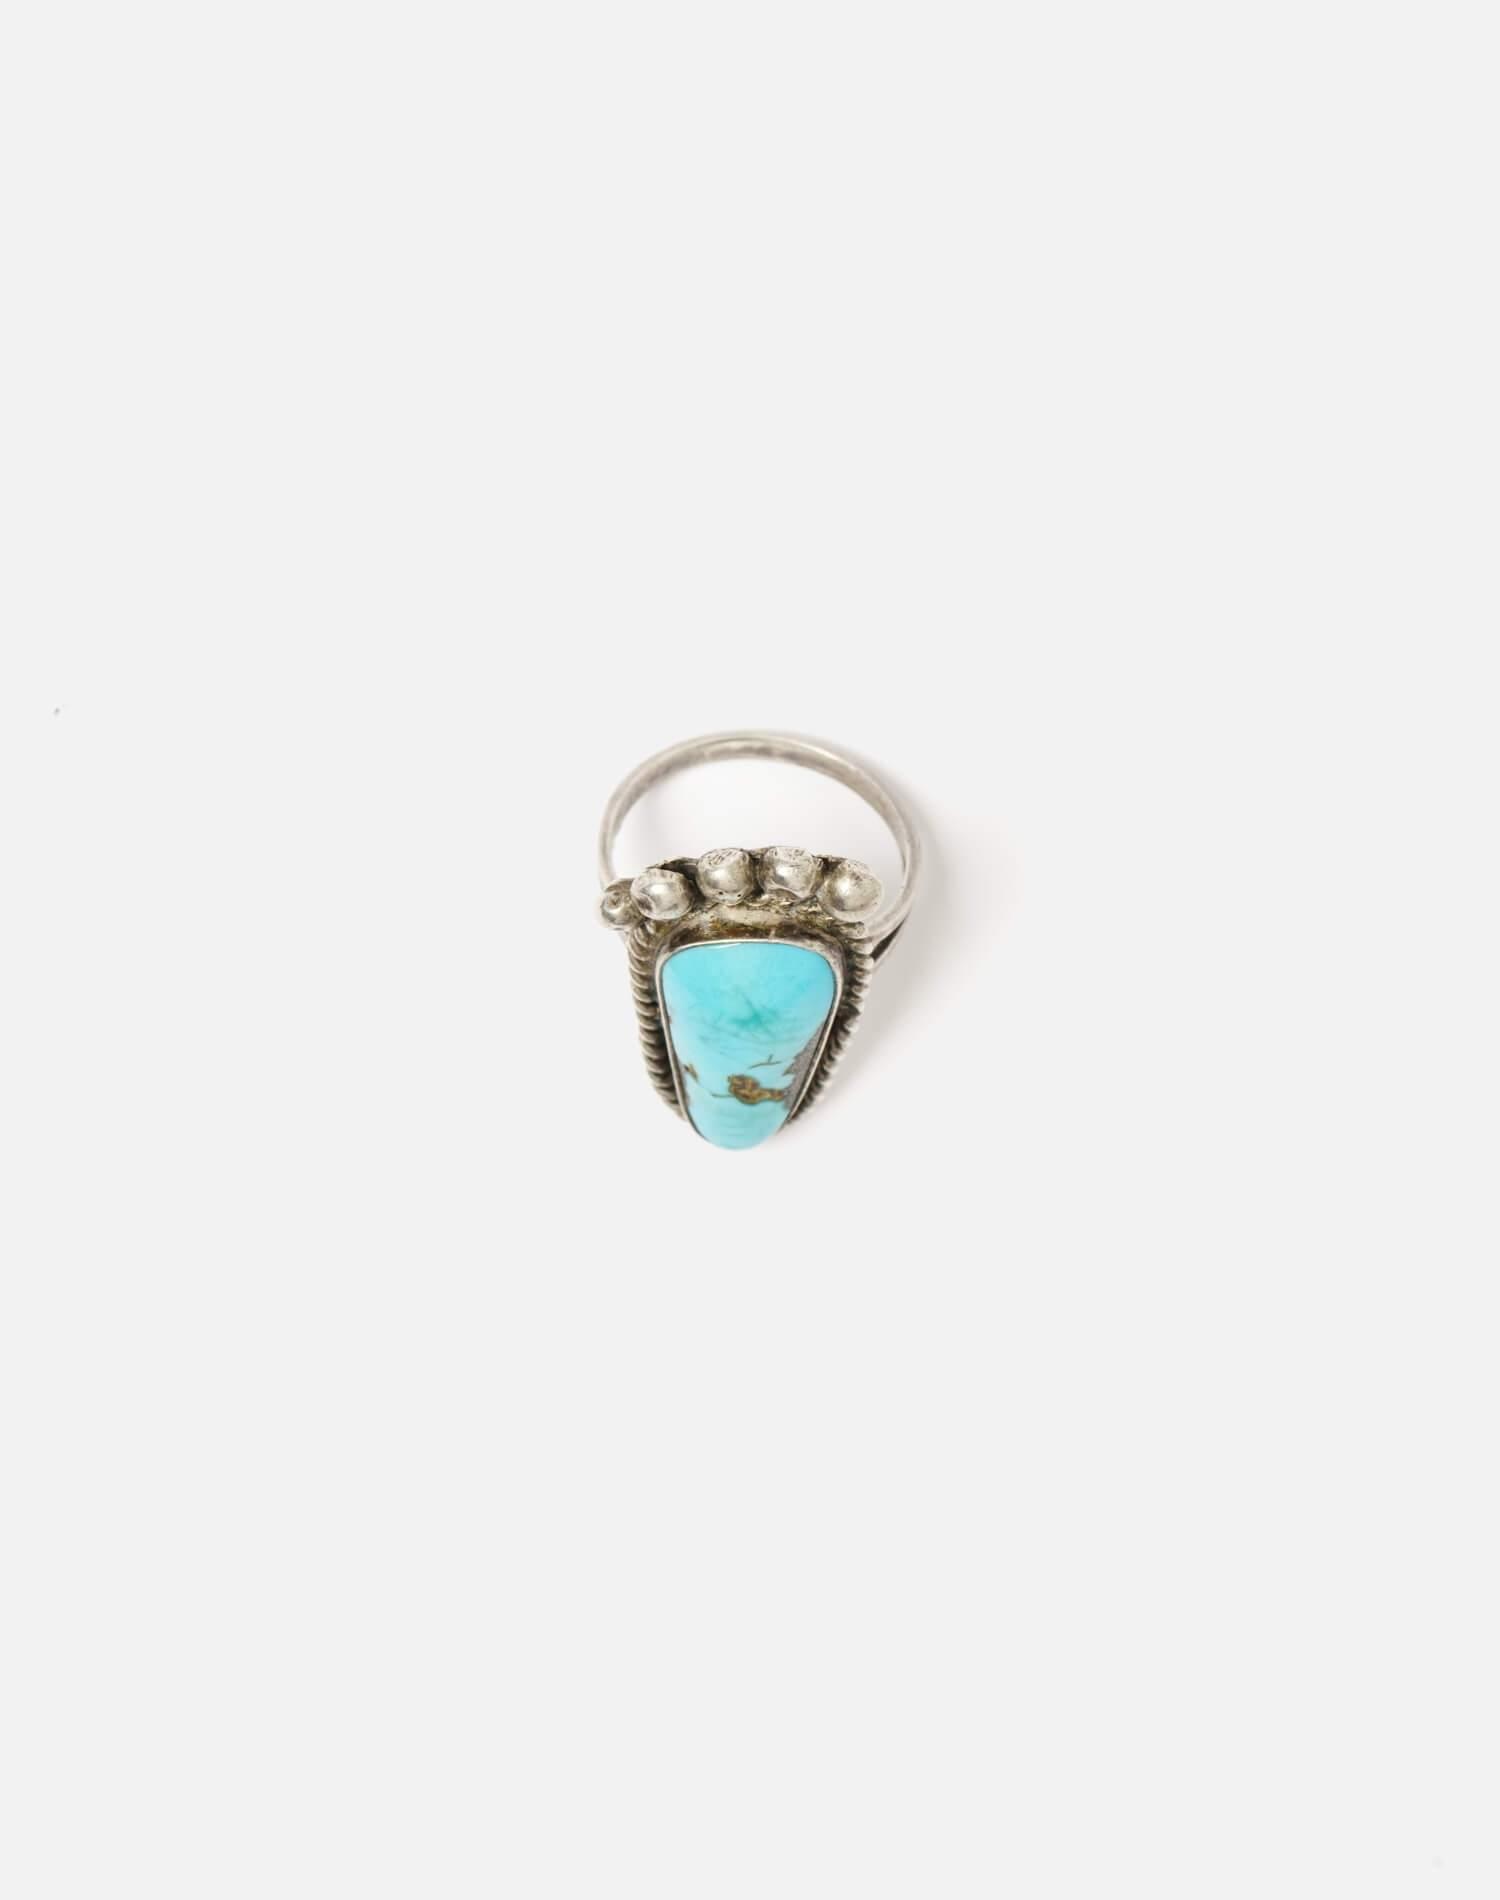 1960s Navajo Sterling Turquoise Foot Ring - #93 3